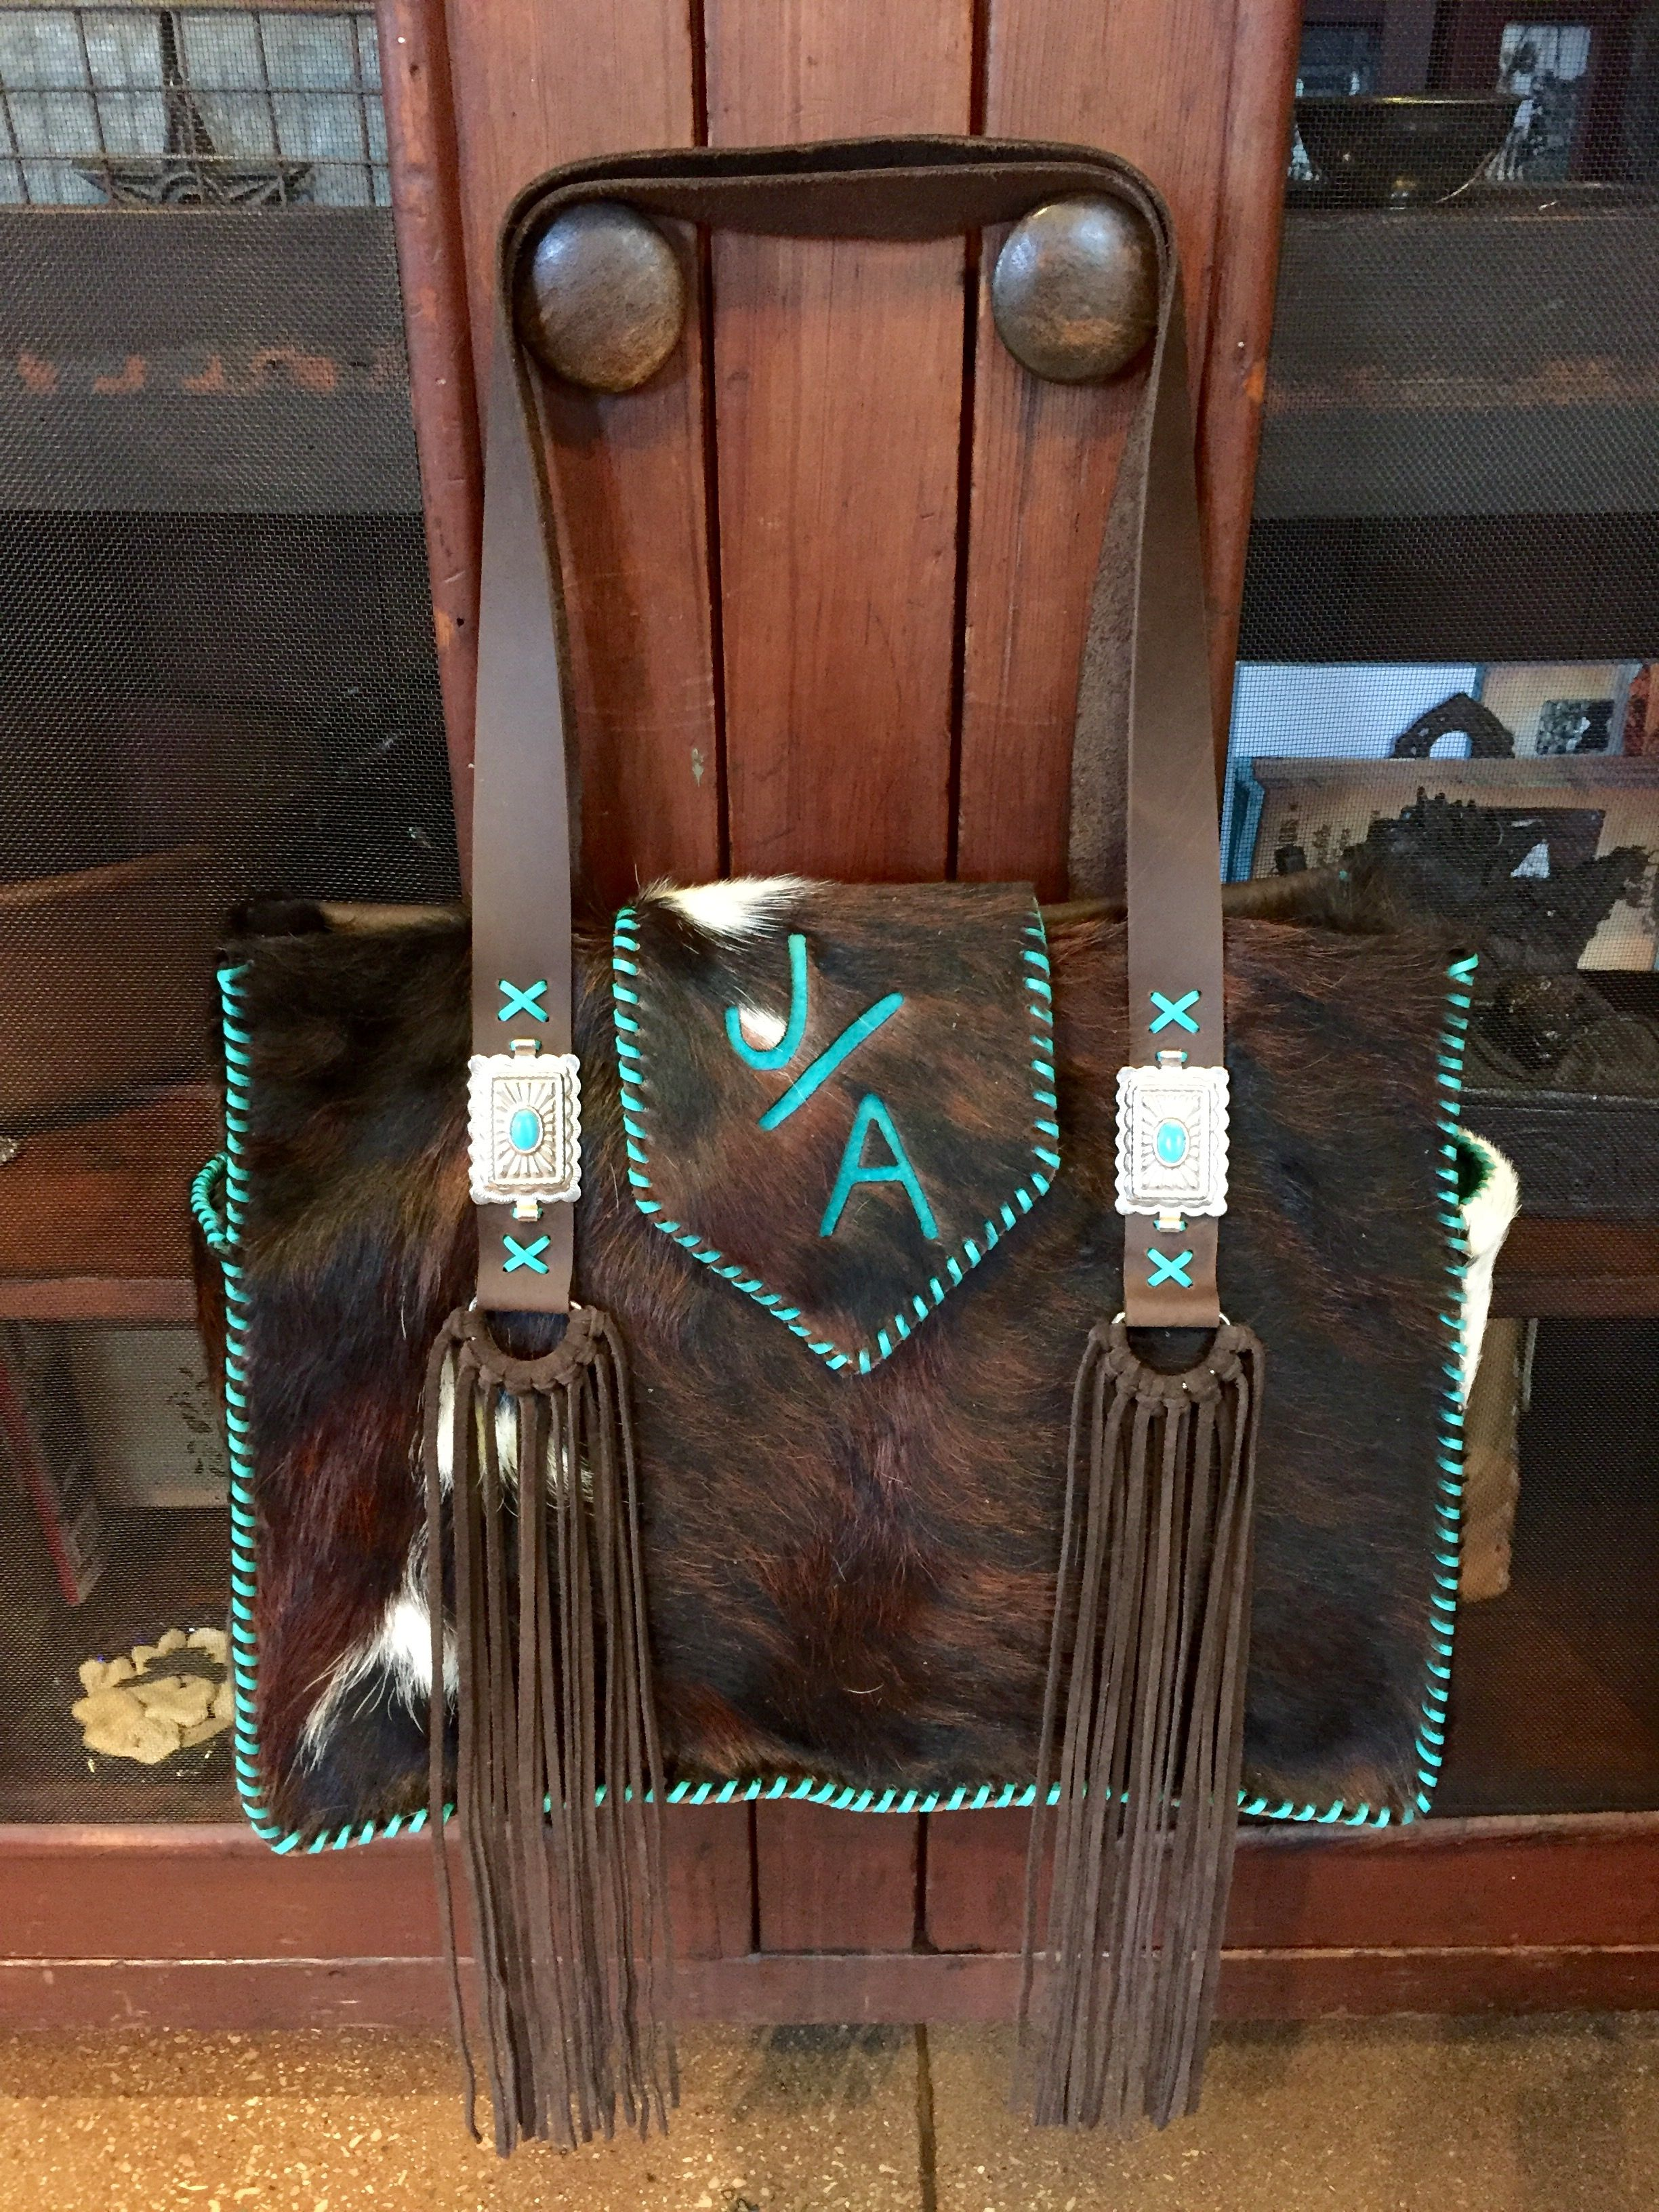 The Buckaroo Diaper Tote stitched in turquoise leather lace, with the owners brand on the flap and exterior side pockets lined in suede. From Go West Designs.